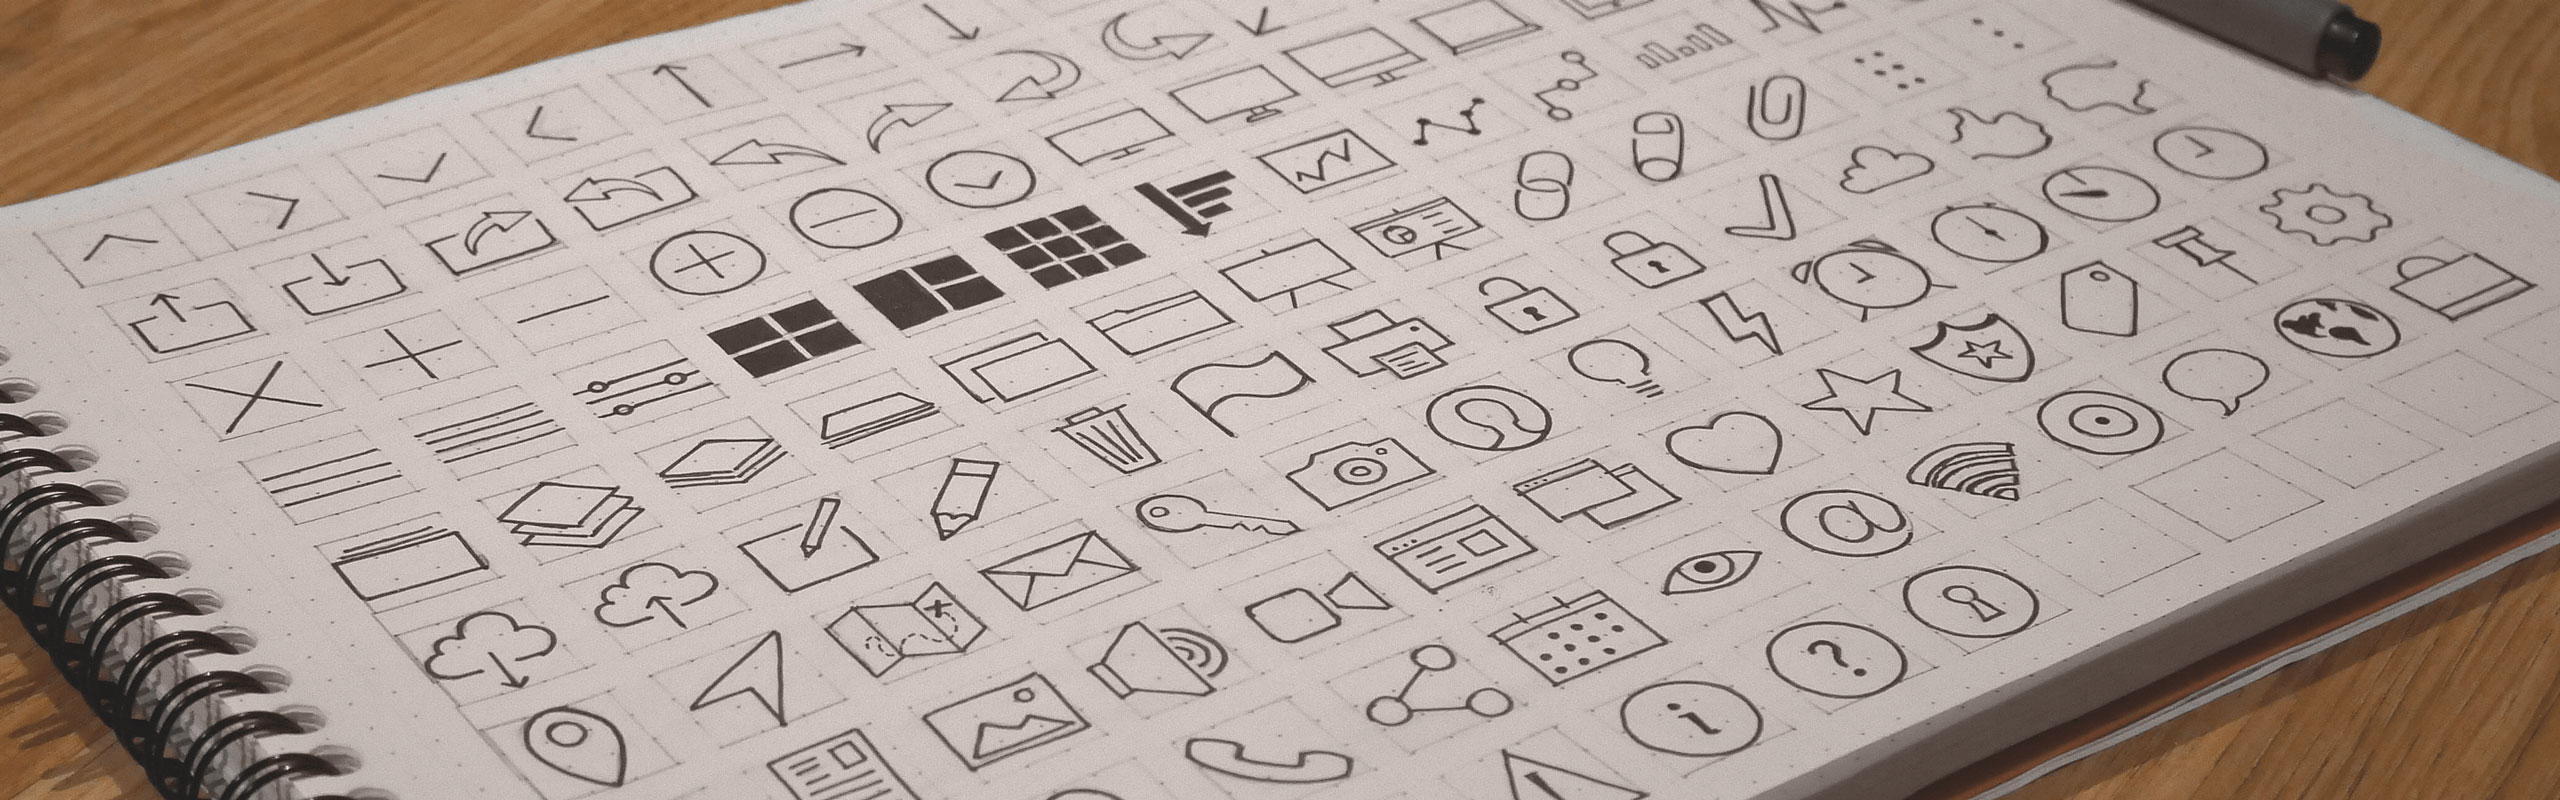 Sketches of the iconset